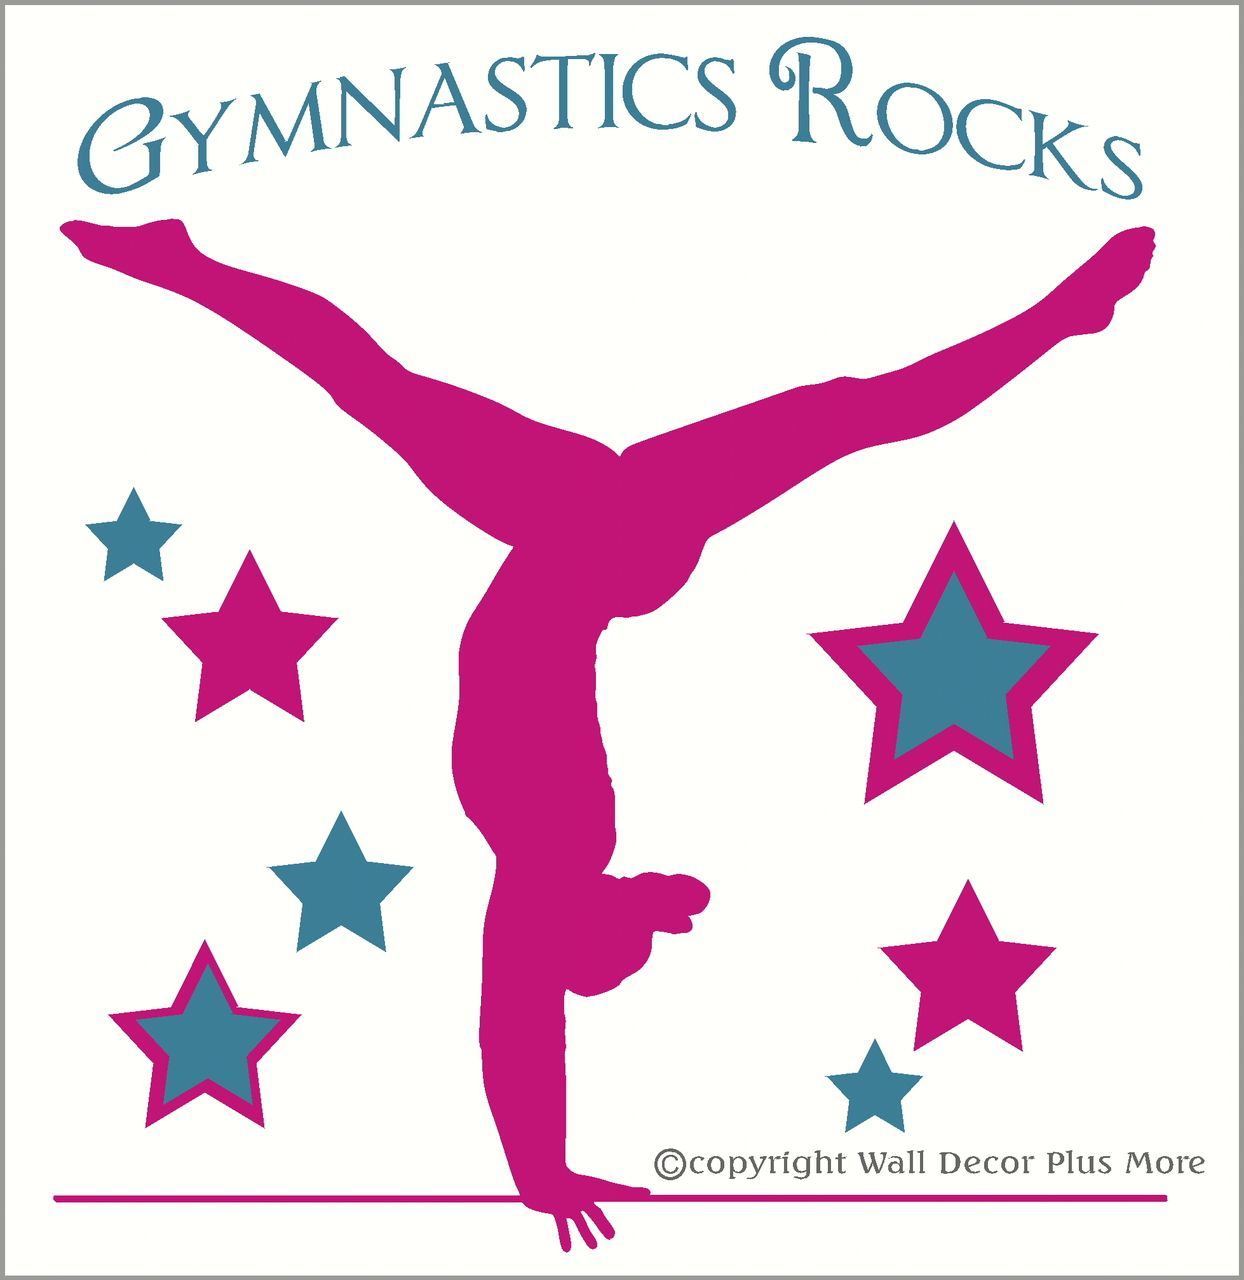 Gymnastic quotes for girls quotesgram by quotesgram siluetas wall decor plus more balancing gymnast with stars and gymnastics rocks girls room wall sticker over tall blackhot pink amipublicfo Image collections